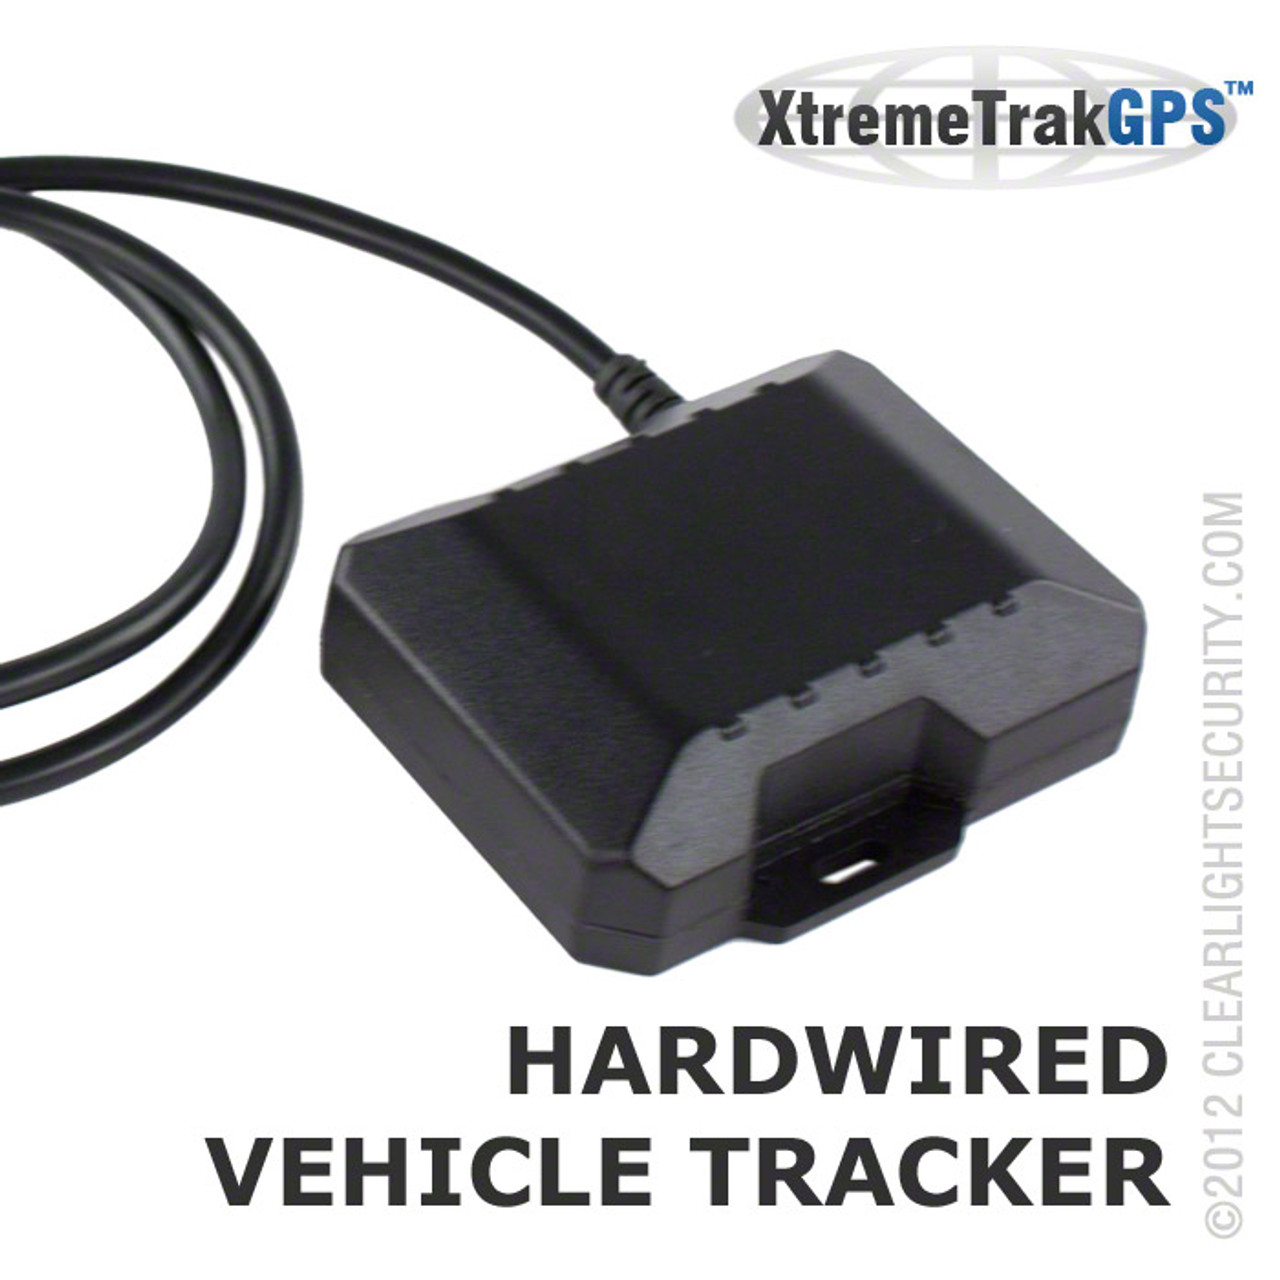 Vehicle Tracking Device >> Xtremetrakgps Hardwired Covert Vehicle Tracker